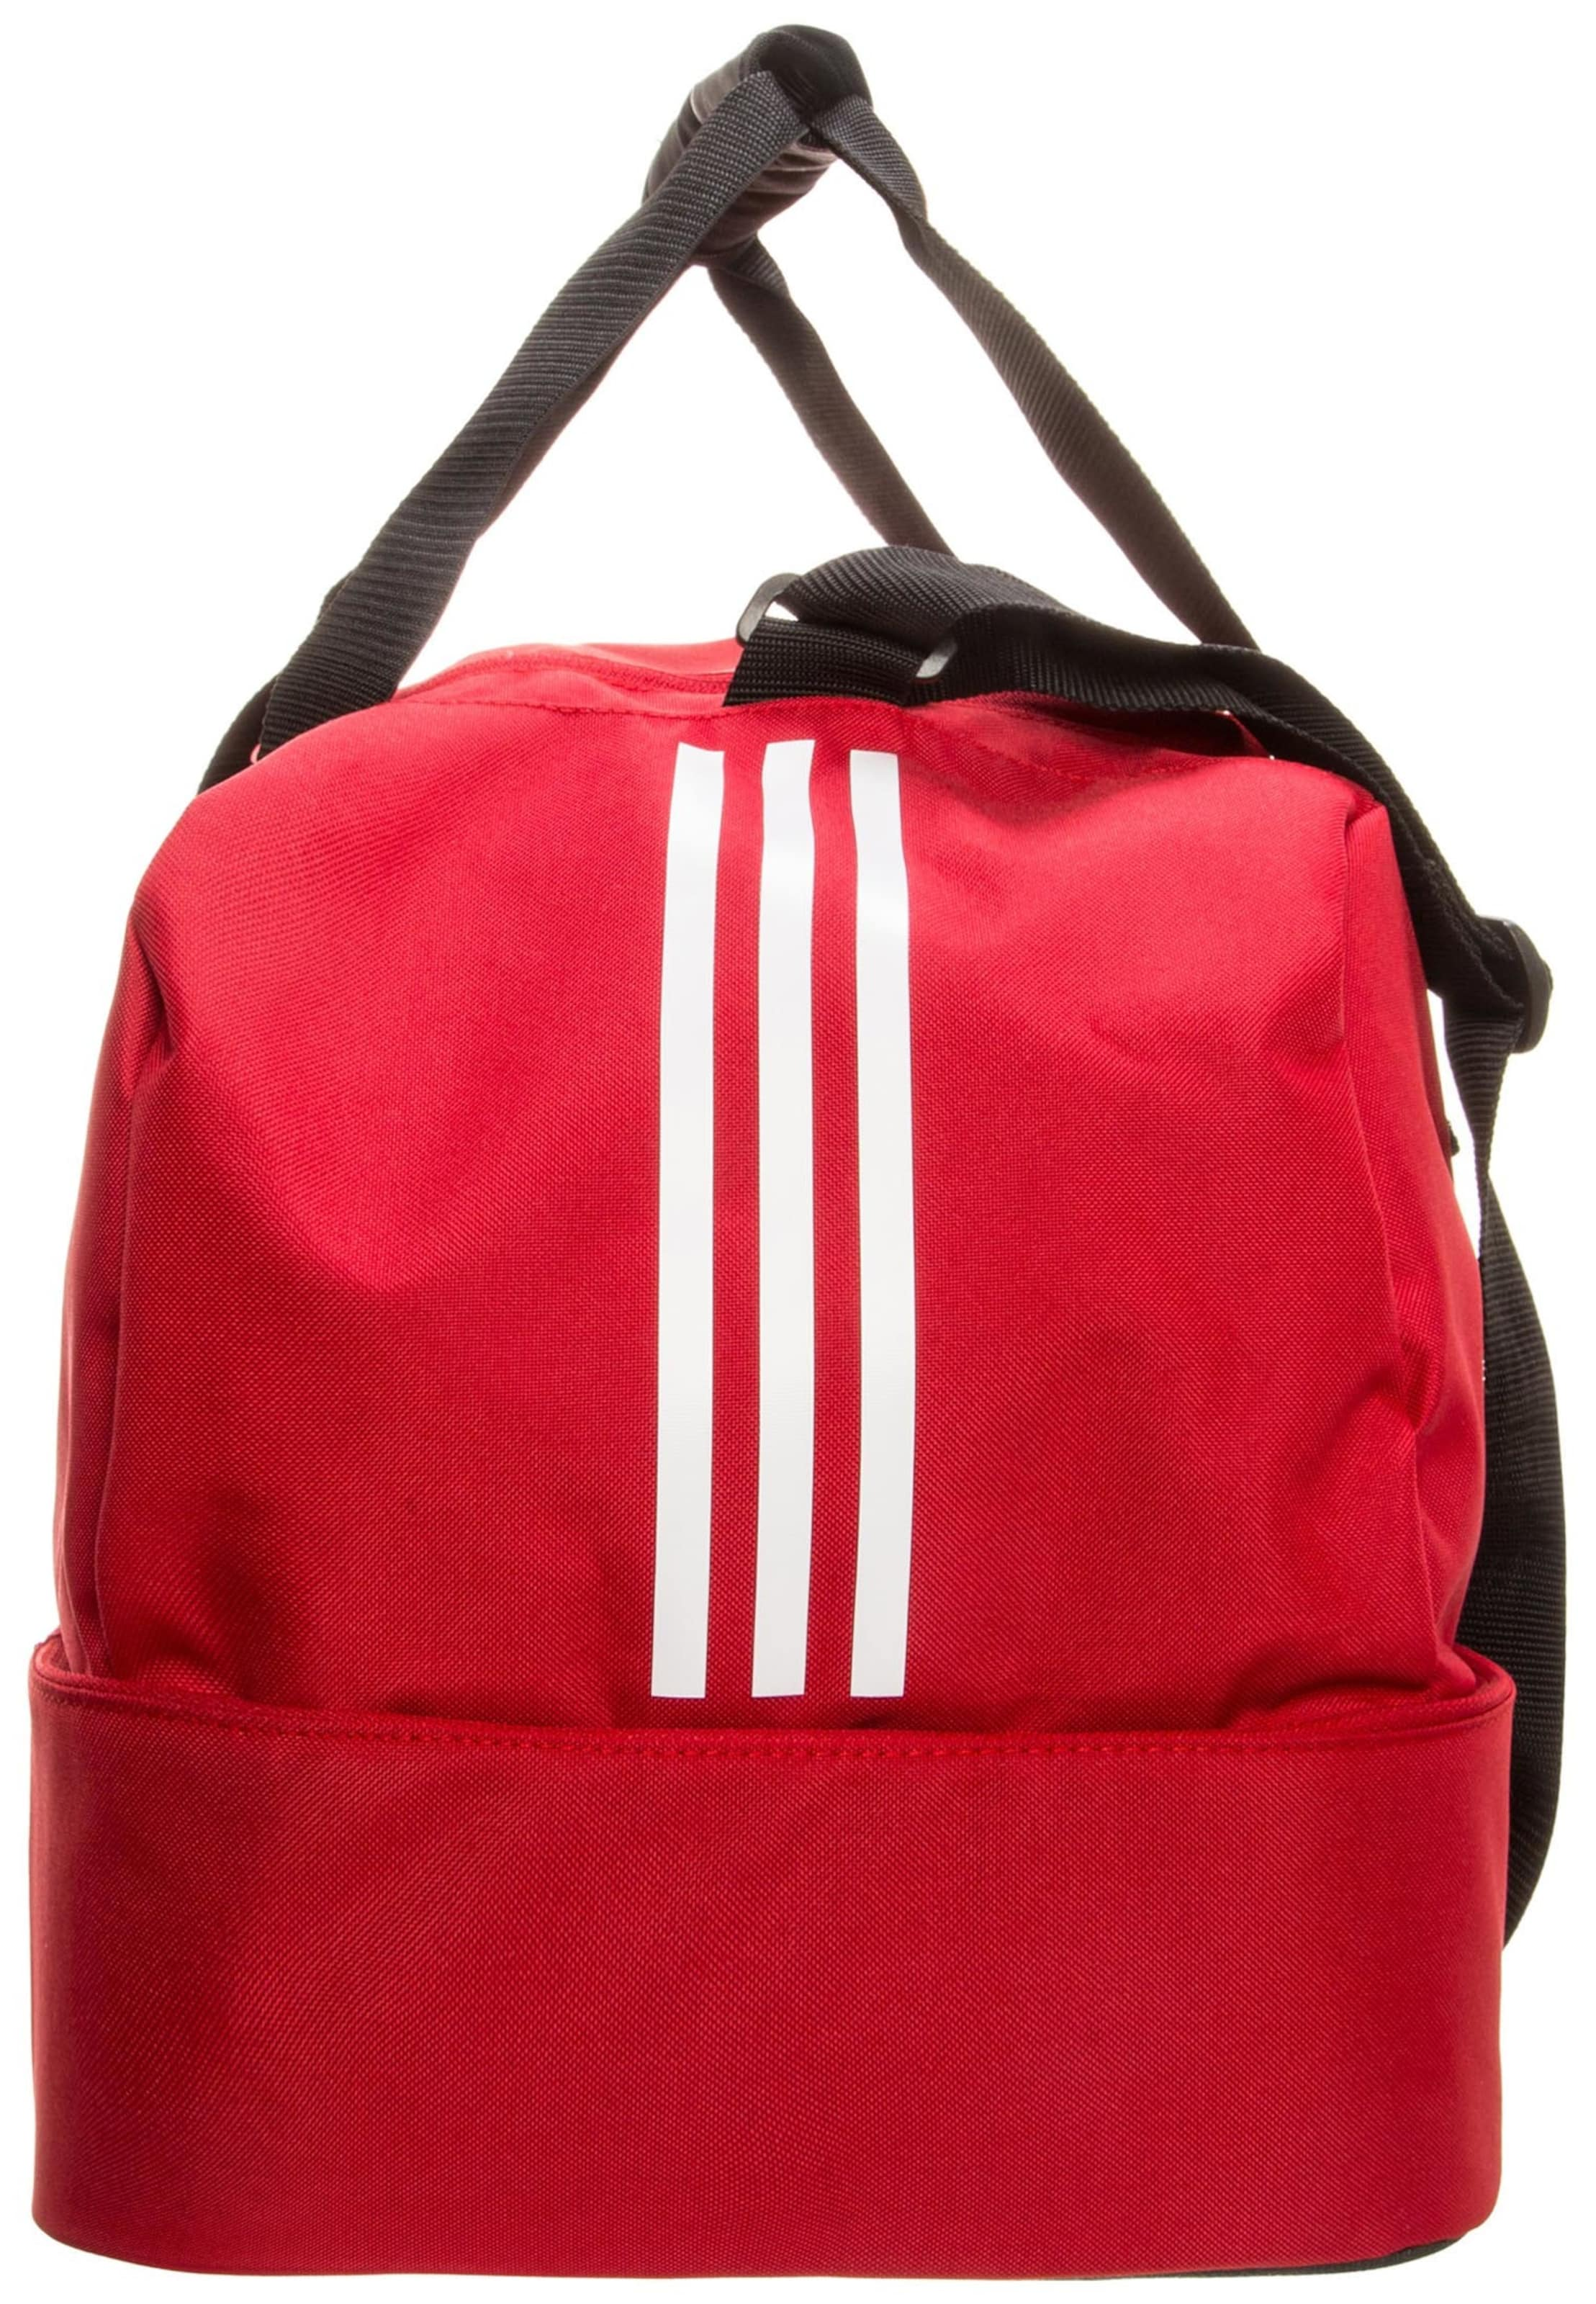 En Adidas 'tiro De Bottom Sport Performance Compartment' Sac RougeNoir Blanc vmn80Nw